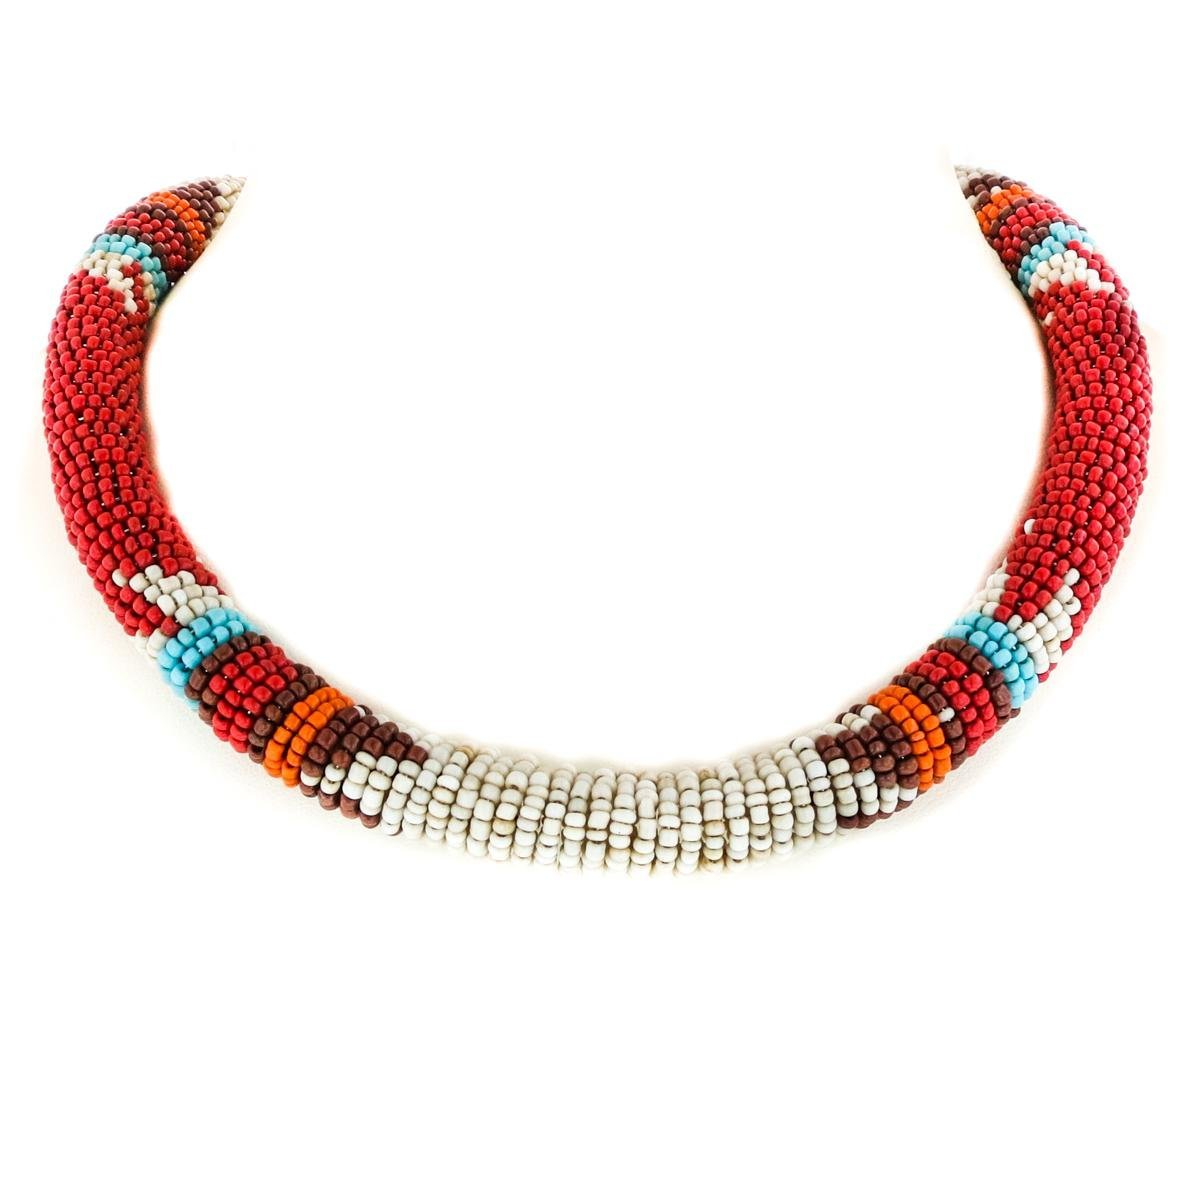 Red Beige Ethnic Style Mixed Color Glass Seed Beads Coiled Necklace(20'')